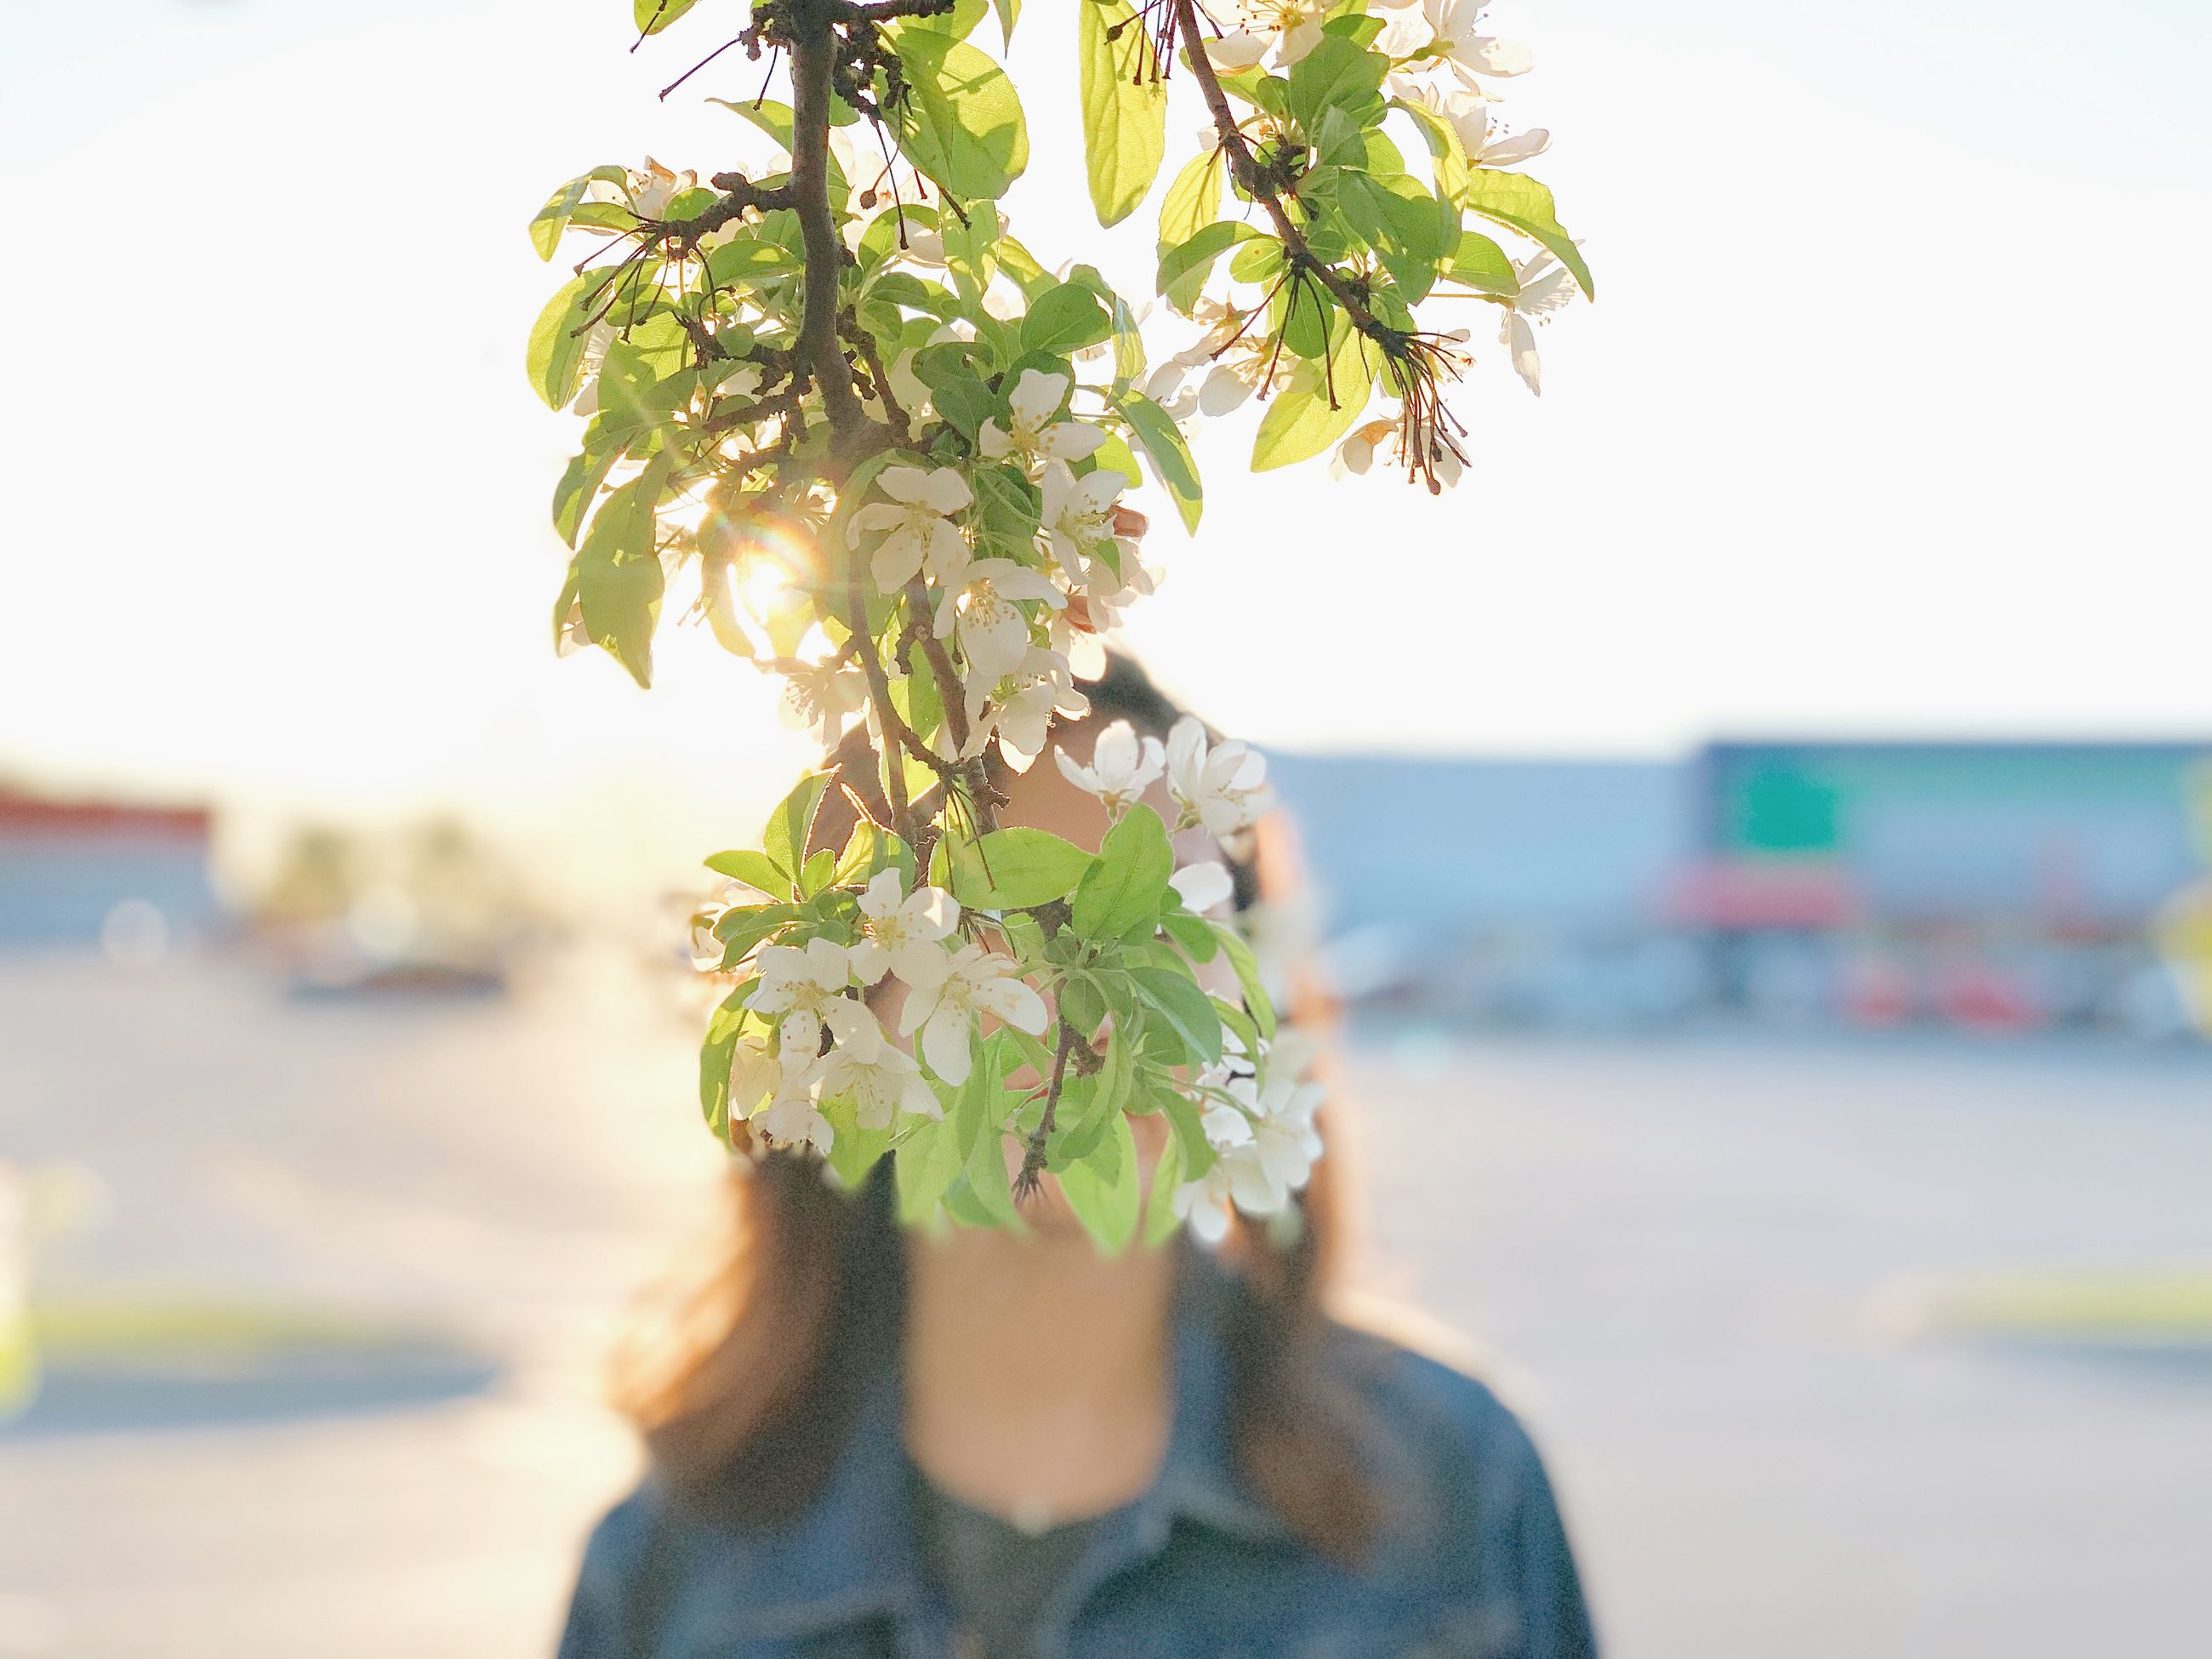 one person, nature, plant, real people, day, leisure activity, focus on foreground, headshot, portrait, beauty in nature, close-up, lifestyles, leaf, plant part, sea, outdoors, flowering plant, sky, flower, human body part, body part, obscured face, flower head, human face